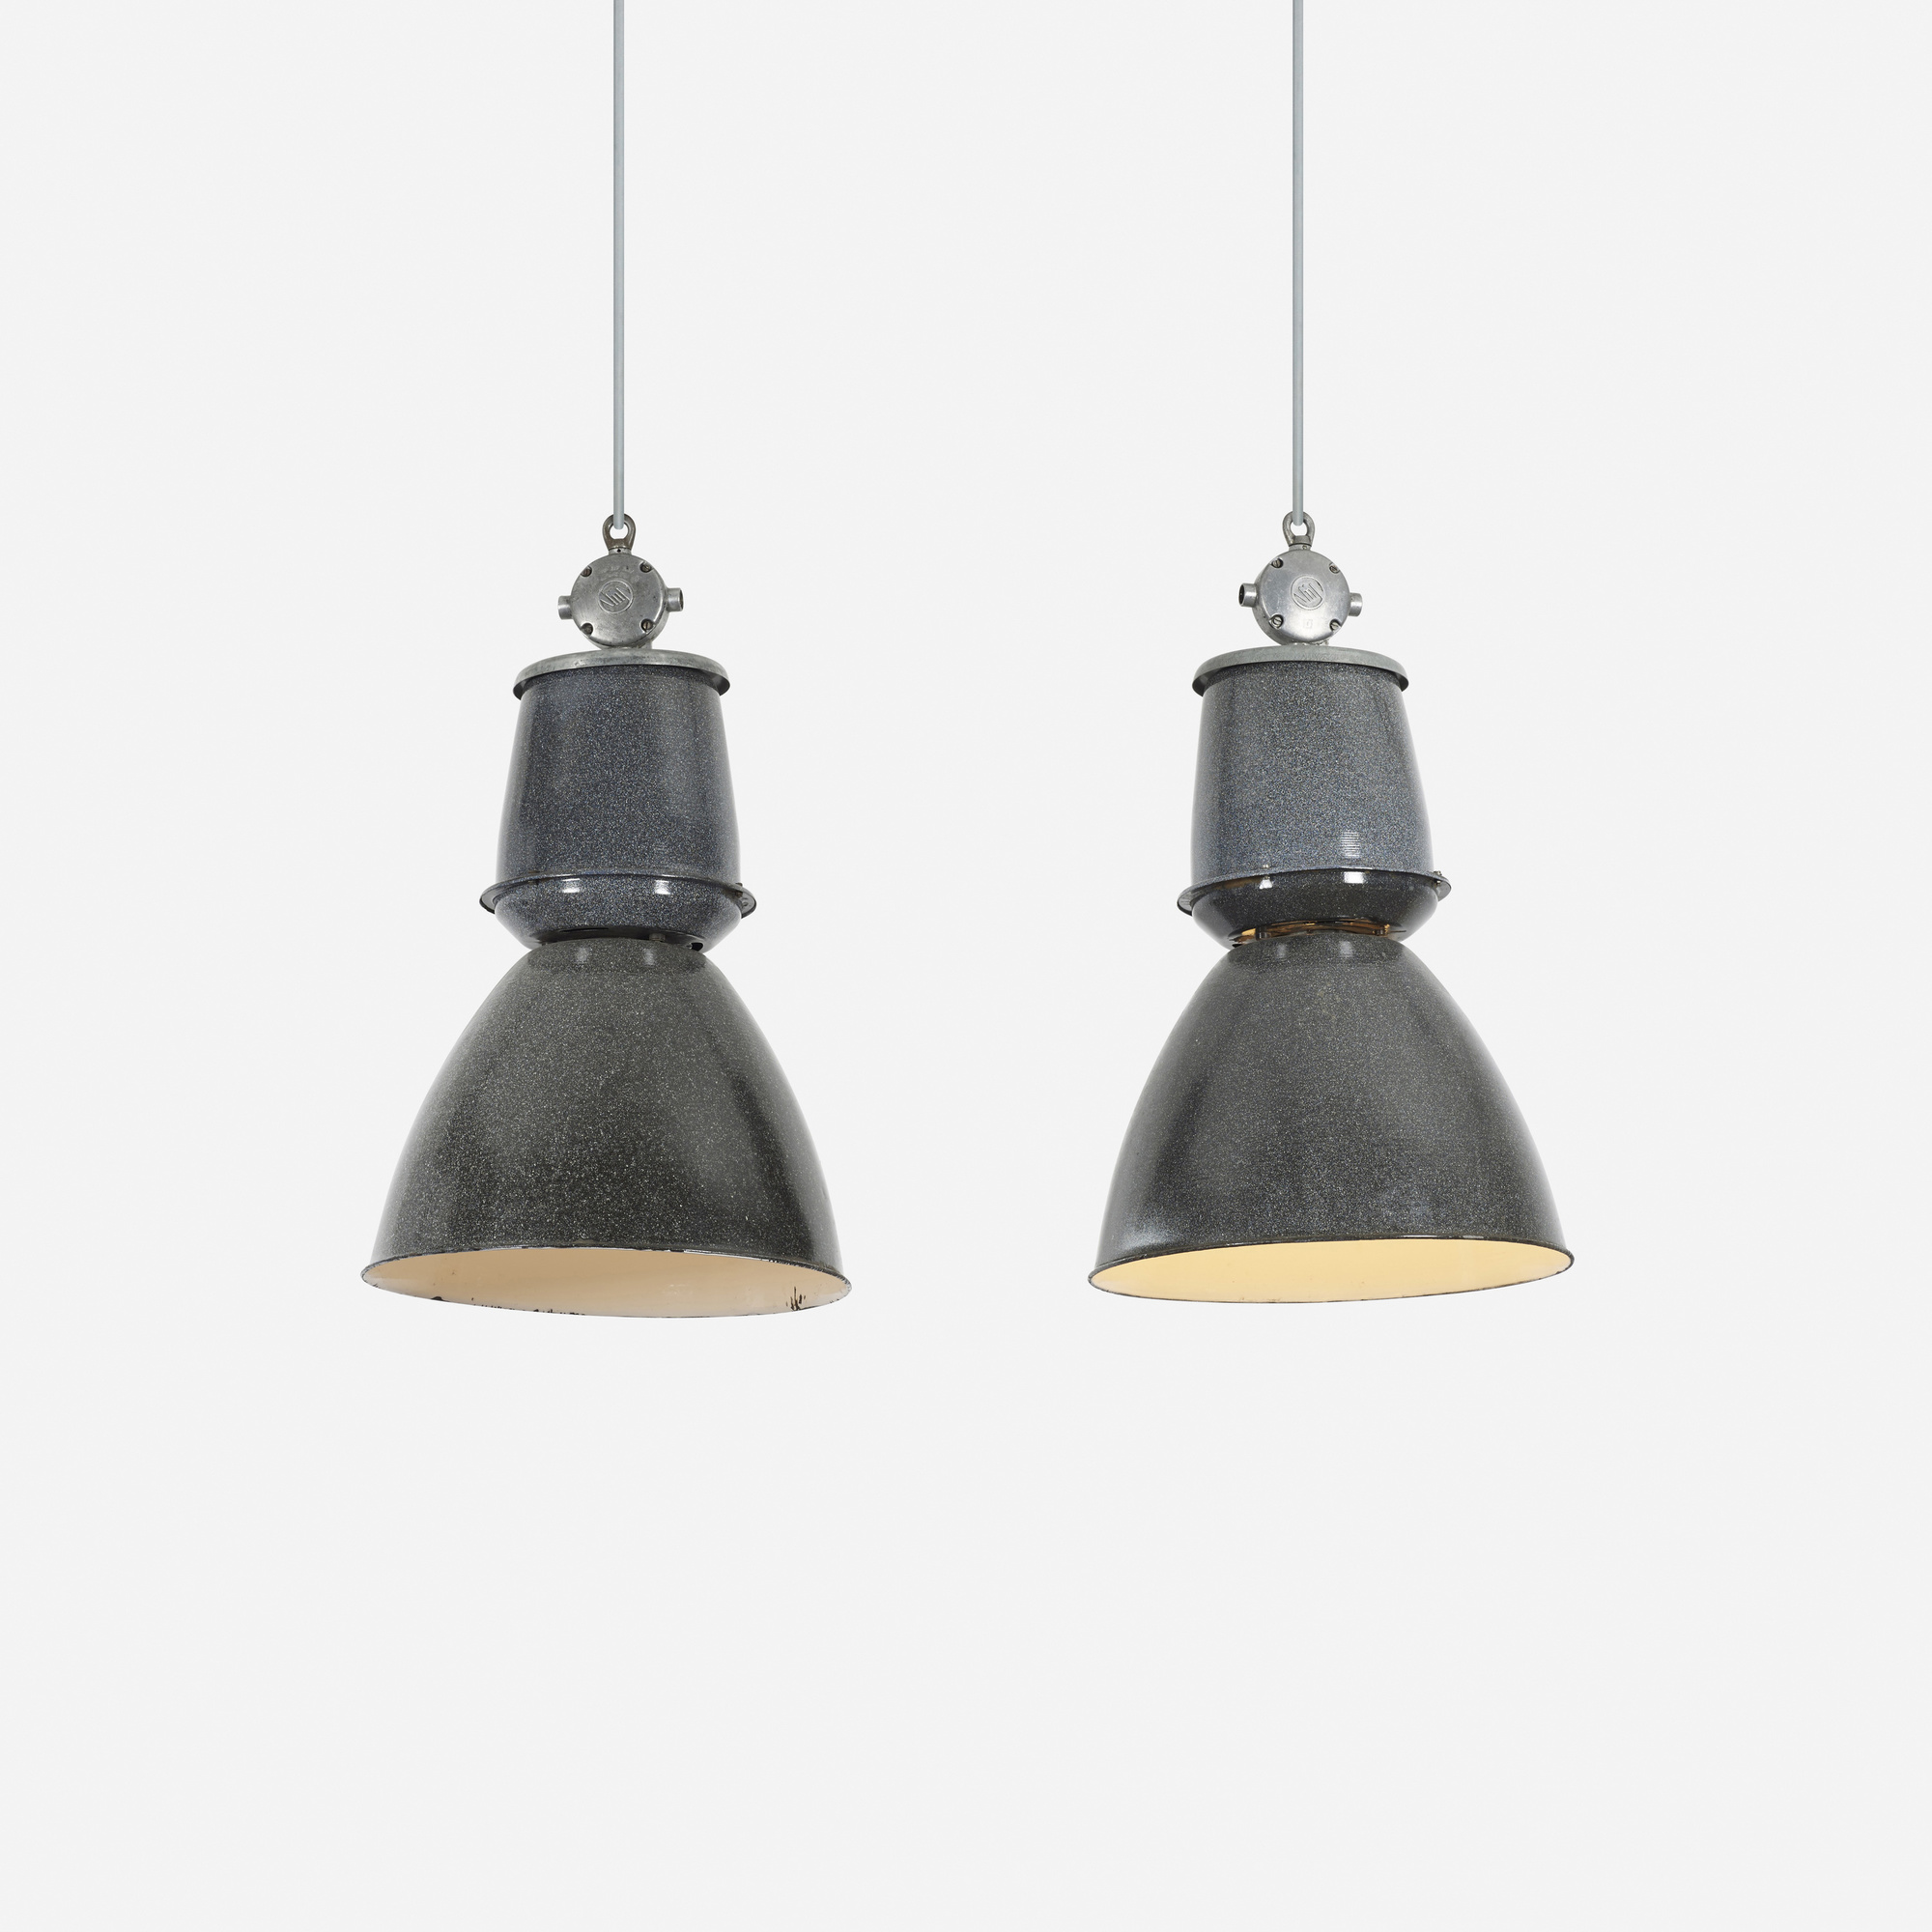 221: Industrial / pendant lights, pair (1 of 2)